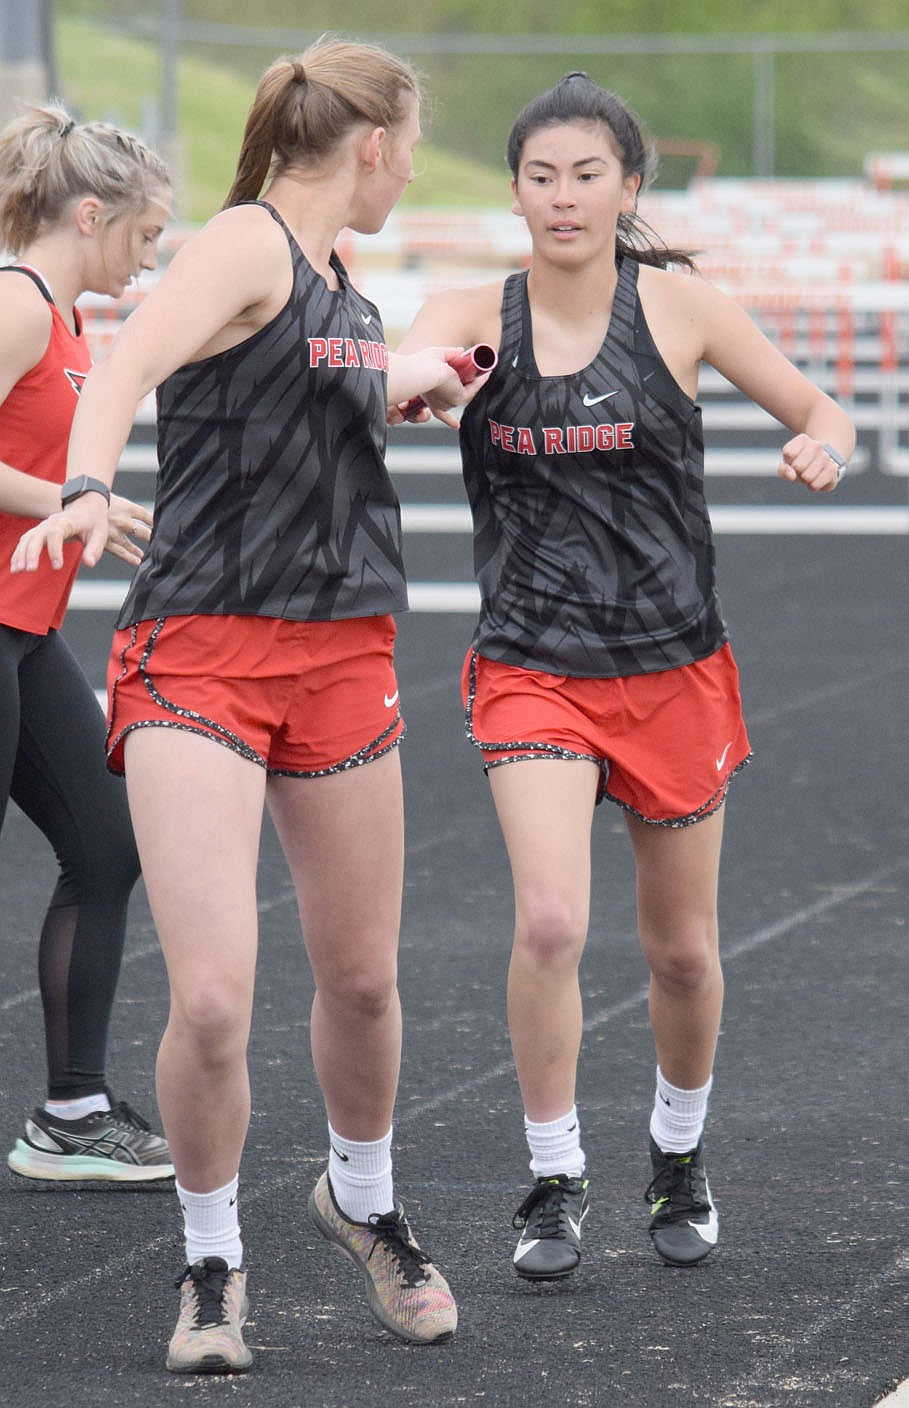 Dallice White receives the baton from Allie King during a relay race in Gravette last week.